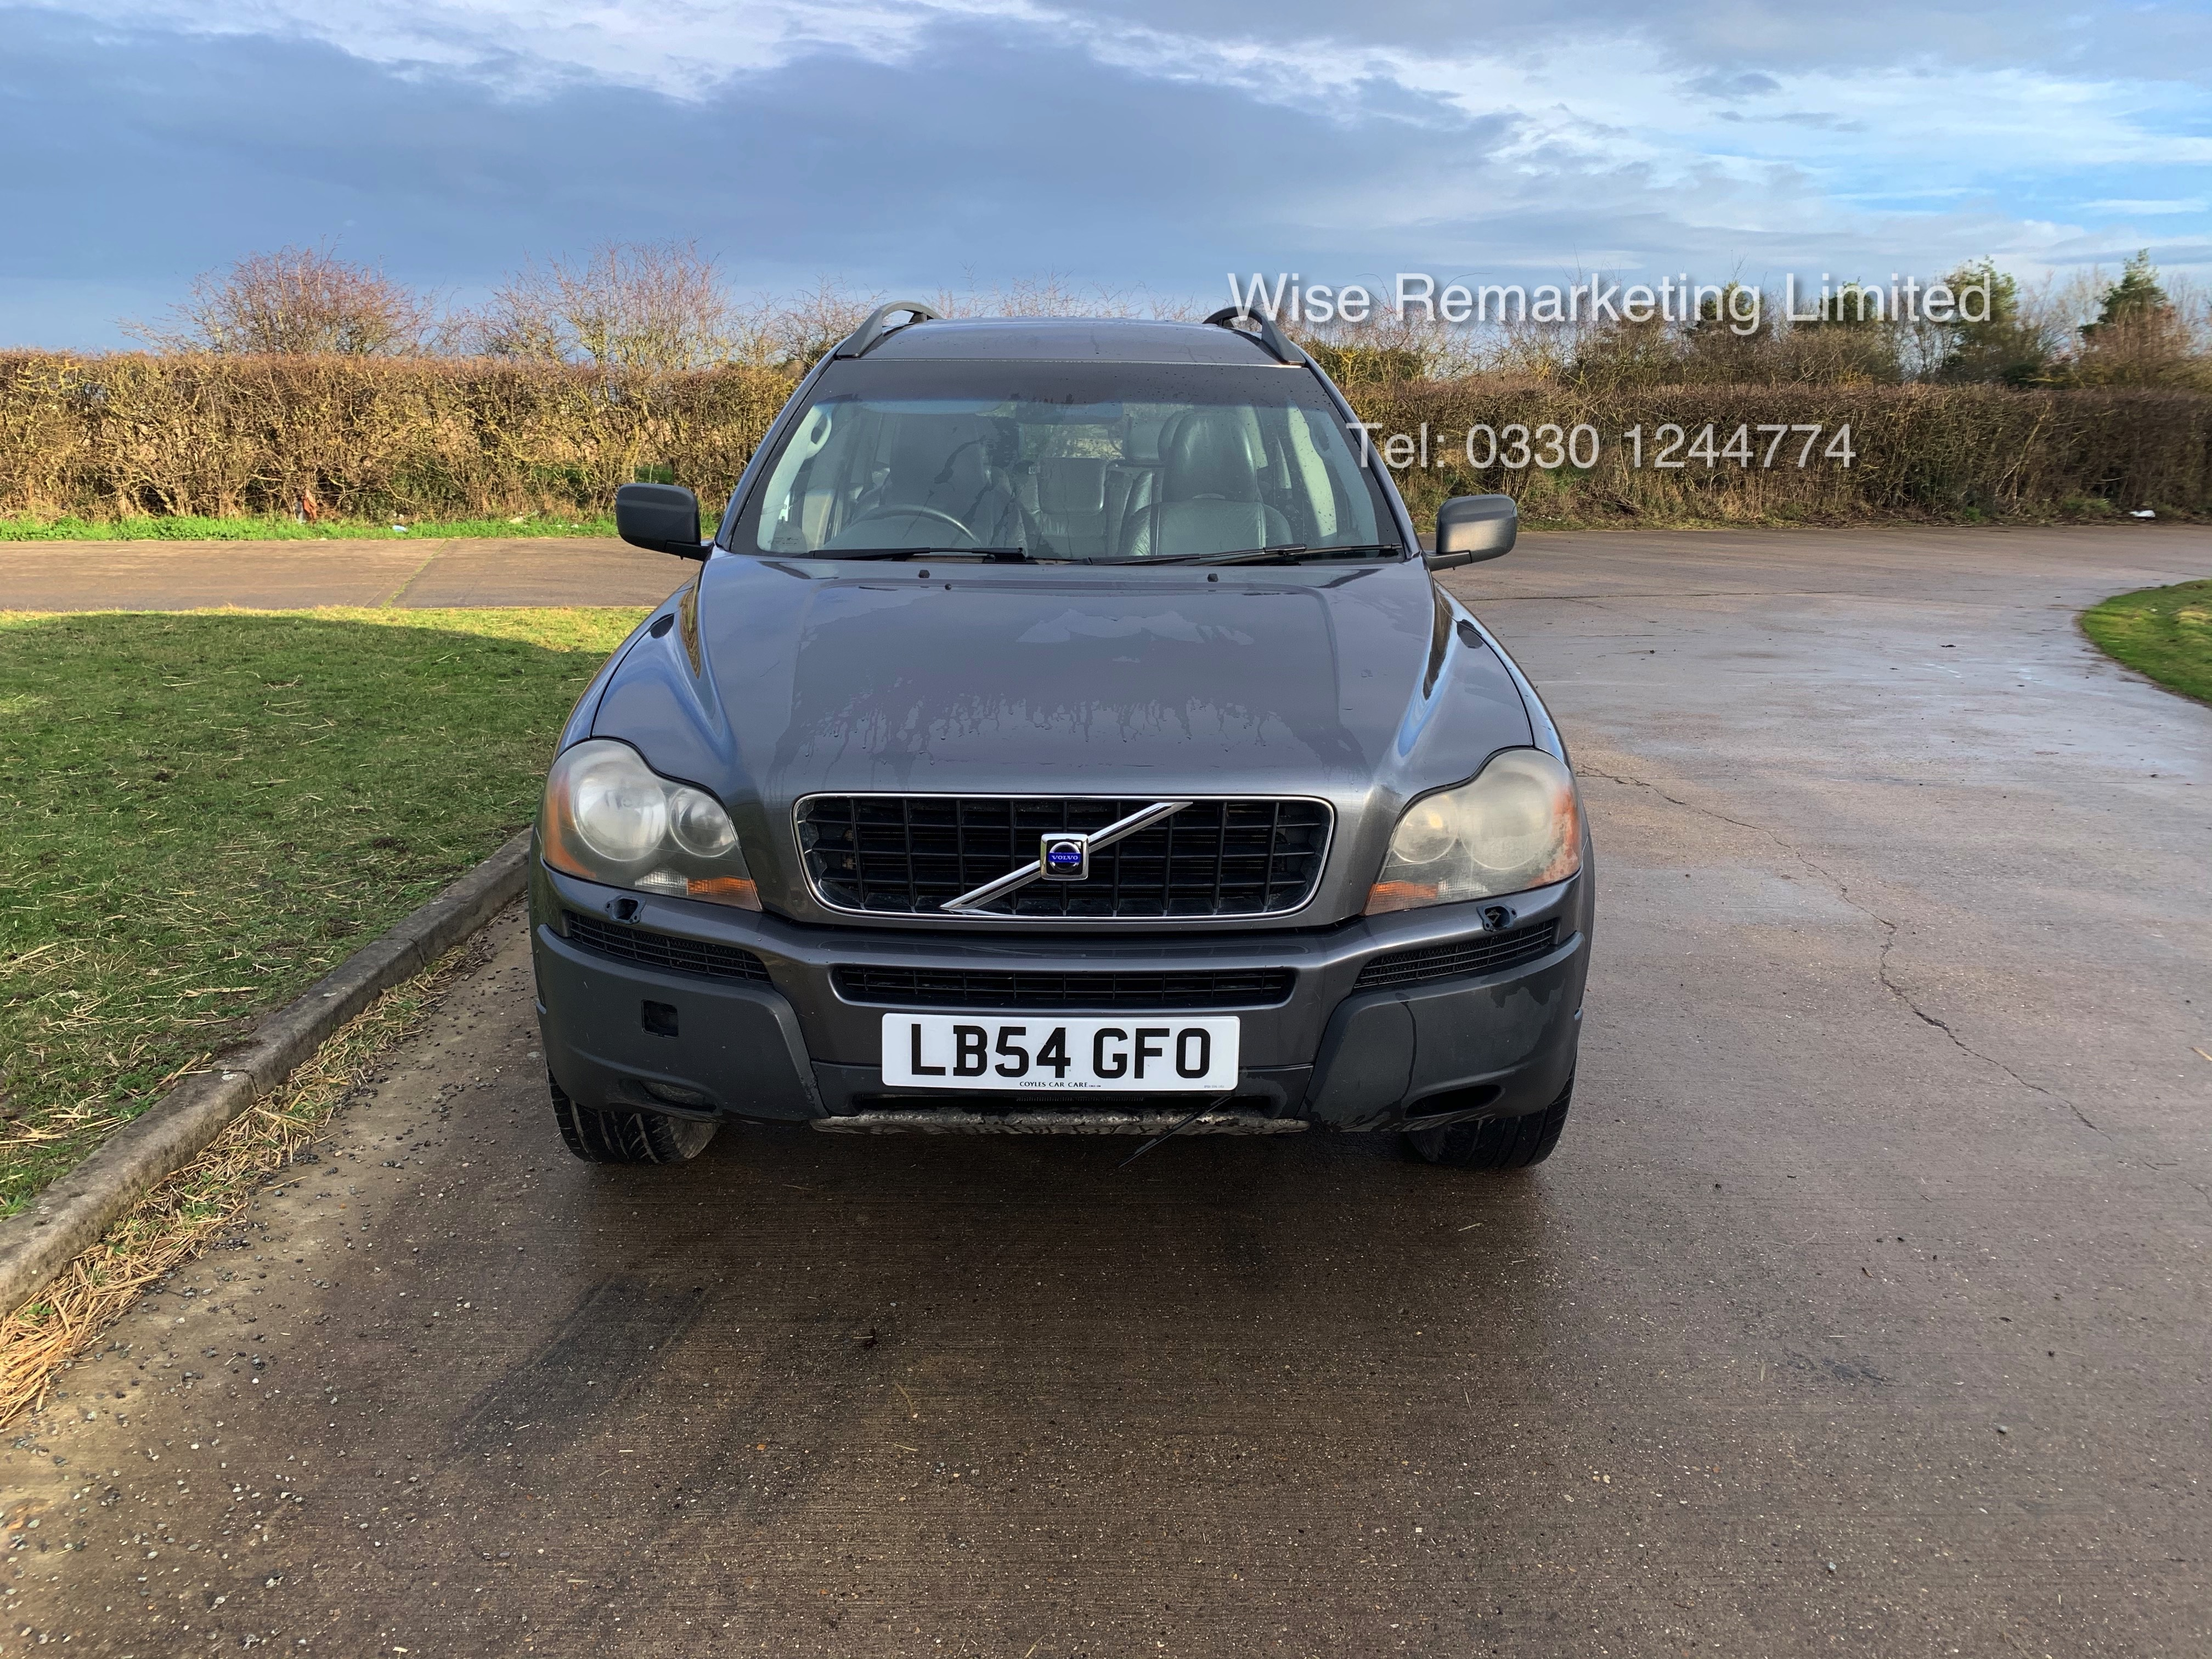 Volvo XC90 D5 2.4 Special Equipment Auto - 2005 Model - 7 Seater - Full Leather - - Image 7 of 21